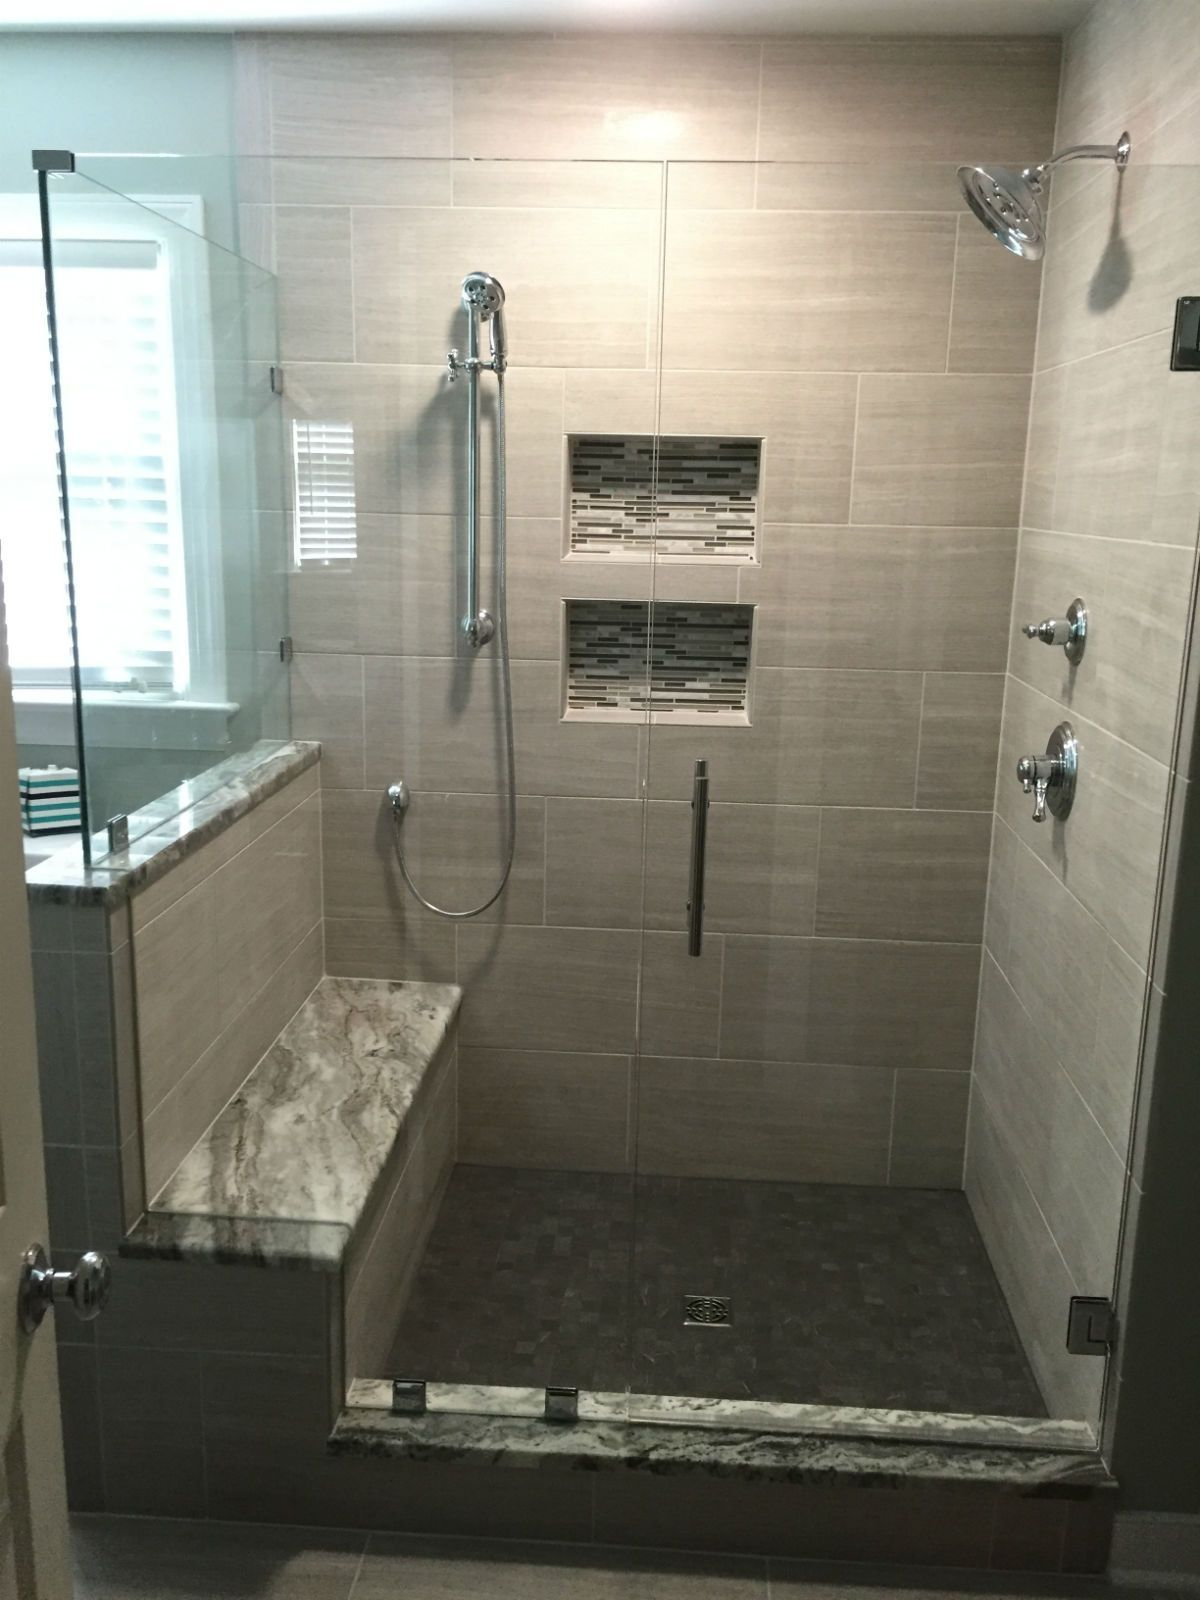 This Frameless Corner Shower Door Enclosure Features A Double Notched Glass Panel To Fit Over The Ben Dream Bathroom Shower Shower Doors Bathroom Shower Panels